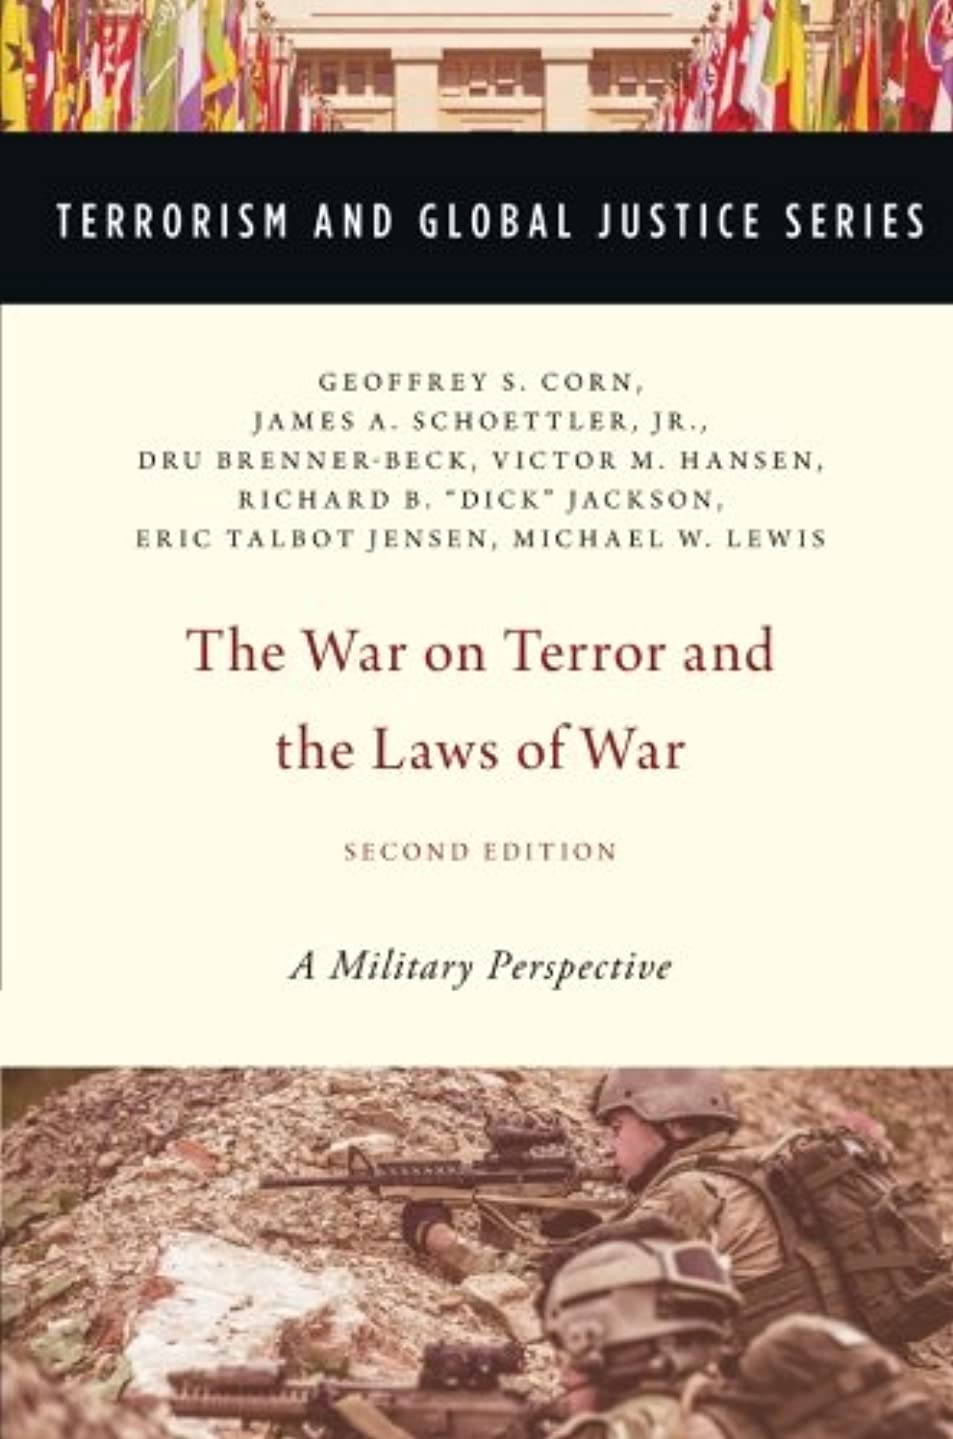 シャープ船酔い去るThe War on Terror and the Laws of War: A Military Perspective (Terrorism and Global Justice)